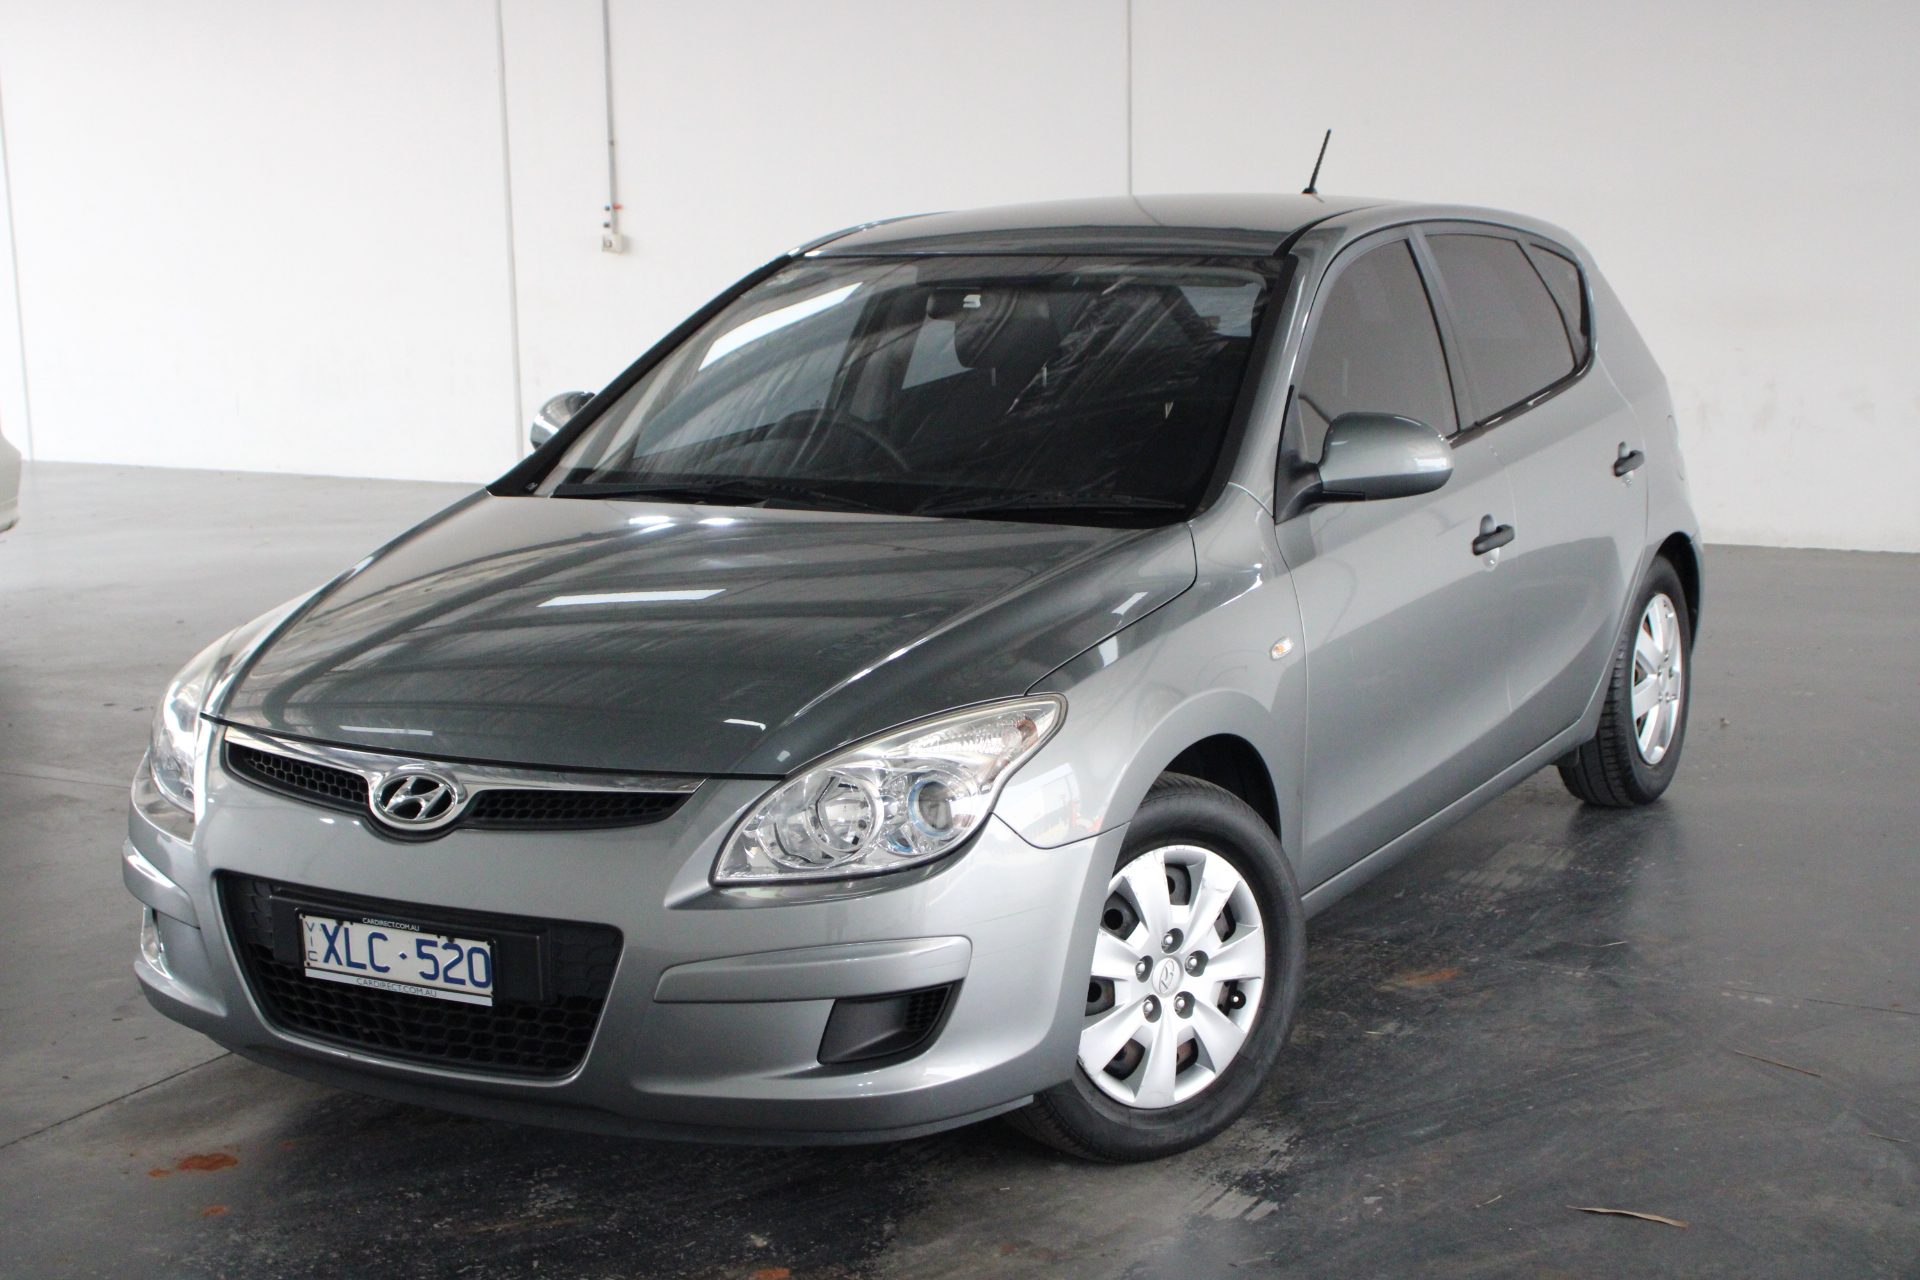 2009 Hyundai i30 SX FD Manual Hatchback